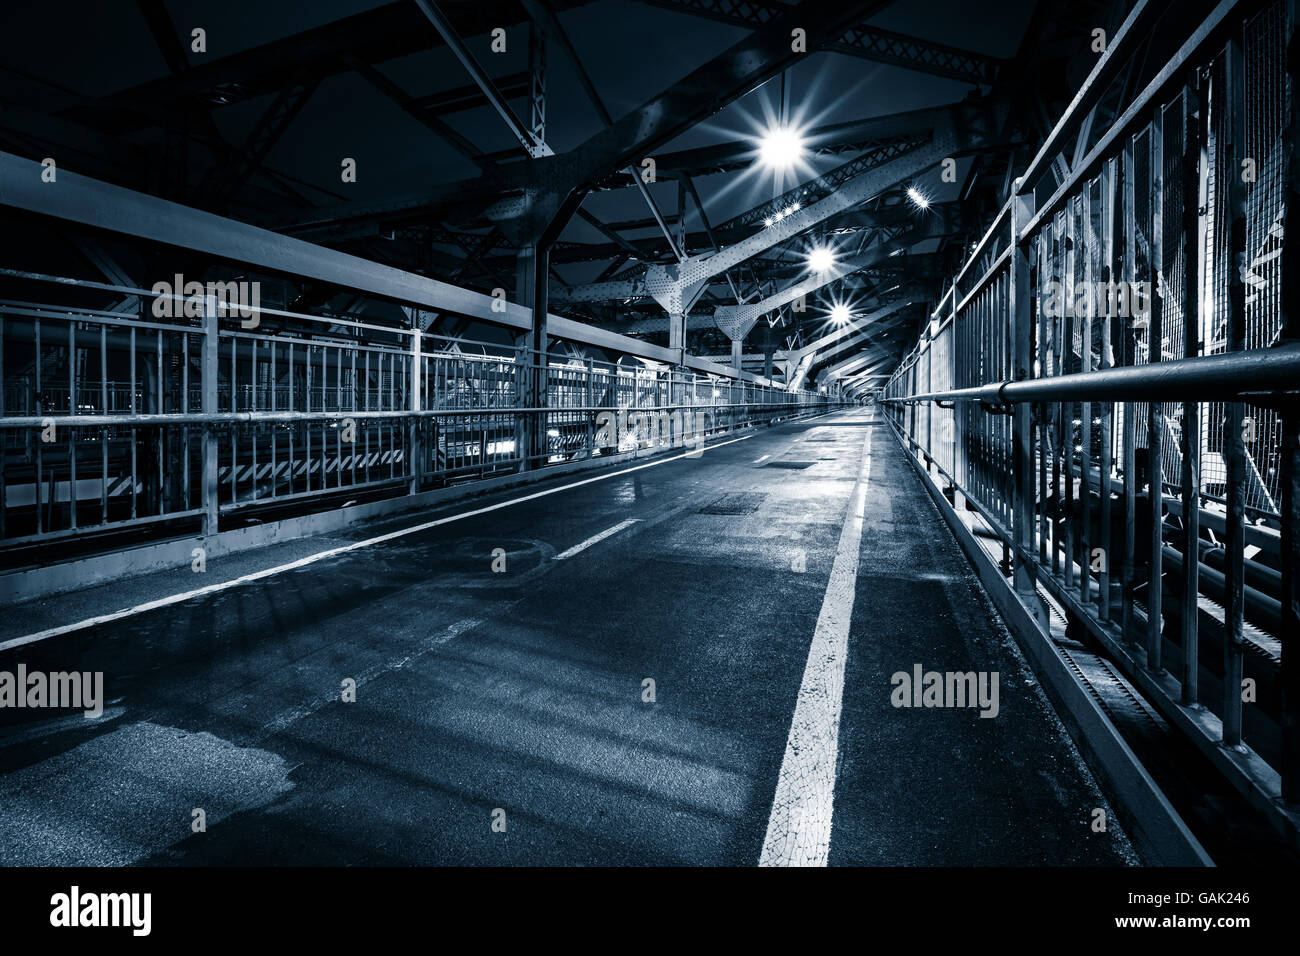 Moody monochrome view of Williamsburg bridge pedestrian walkway by night in New York City - Stock Image